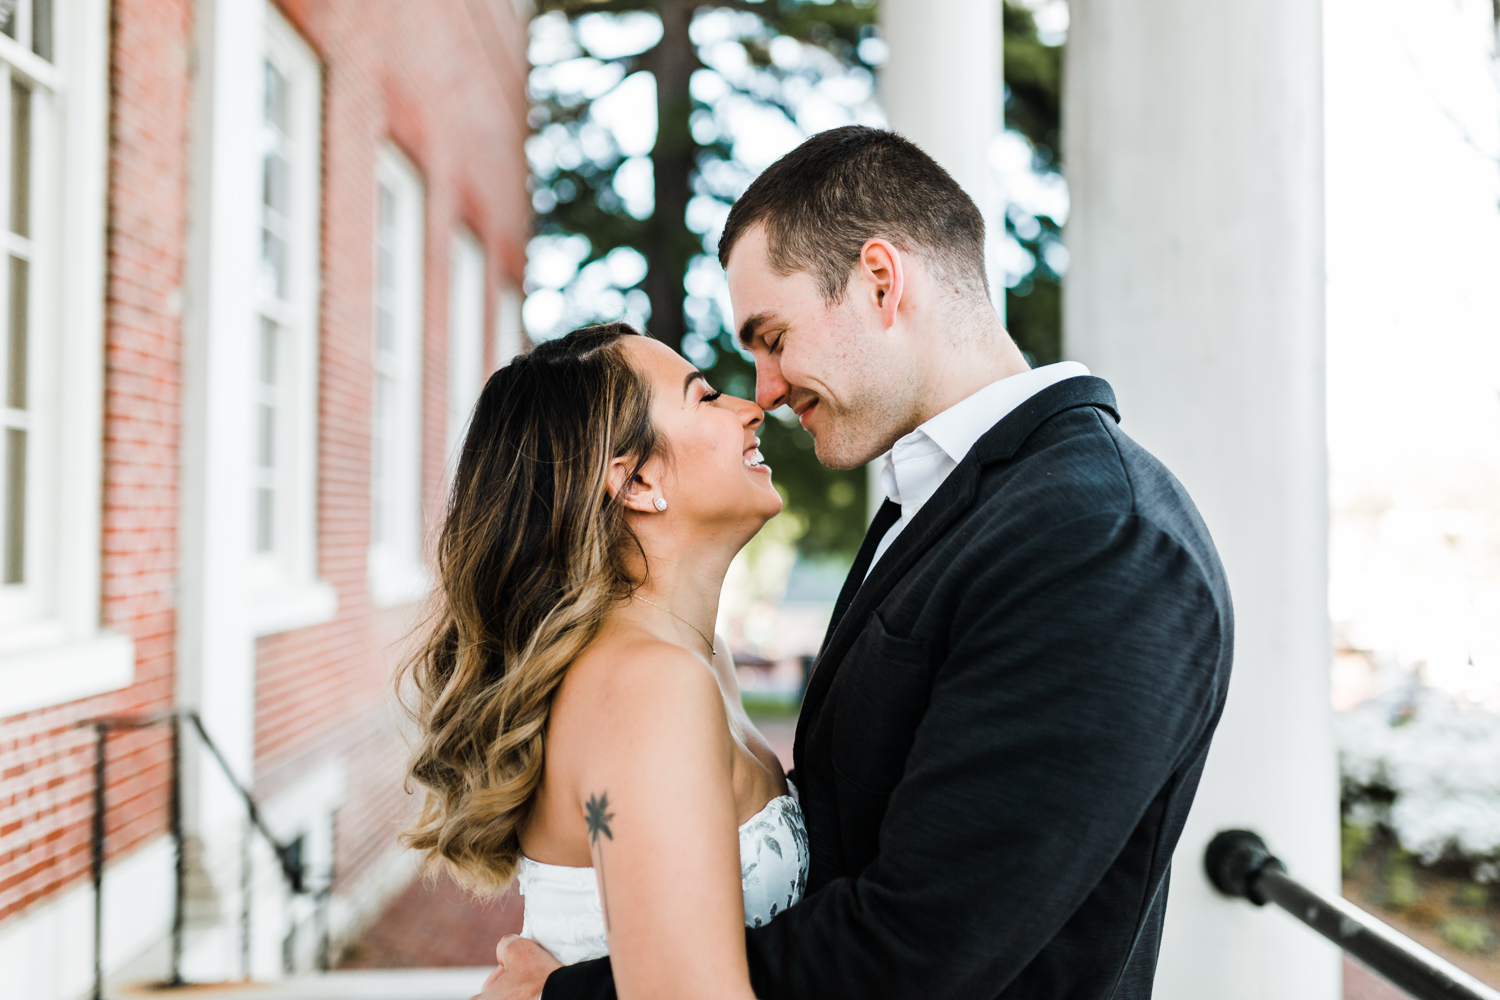 couple gives eskimo kisses in Annapolis - best wedding photos in Annapolis